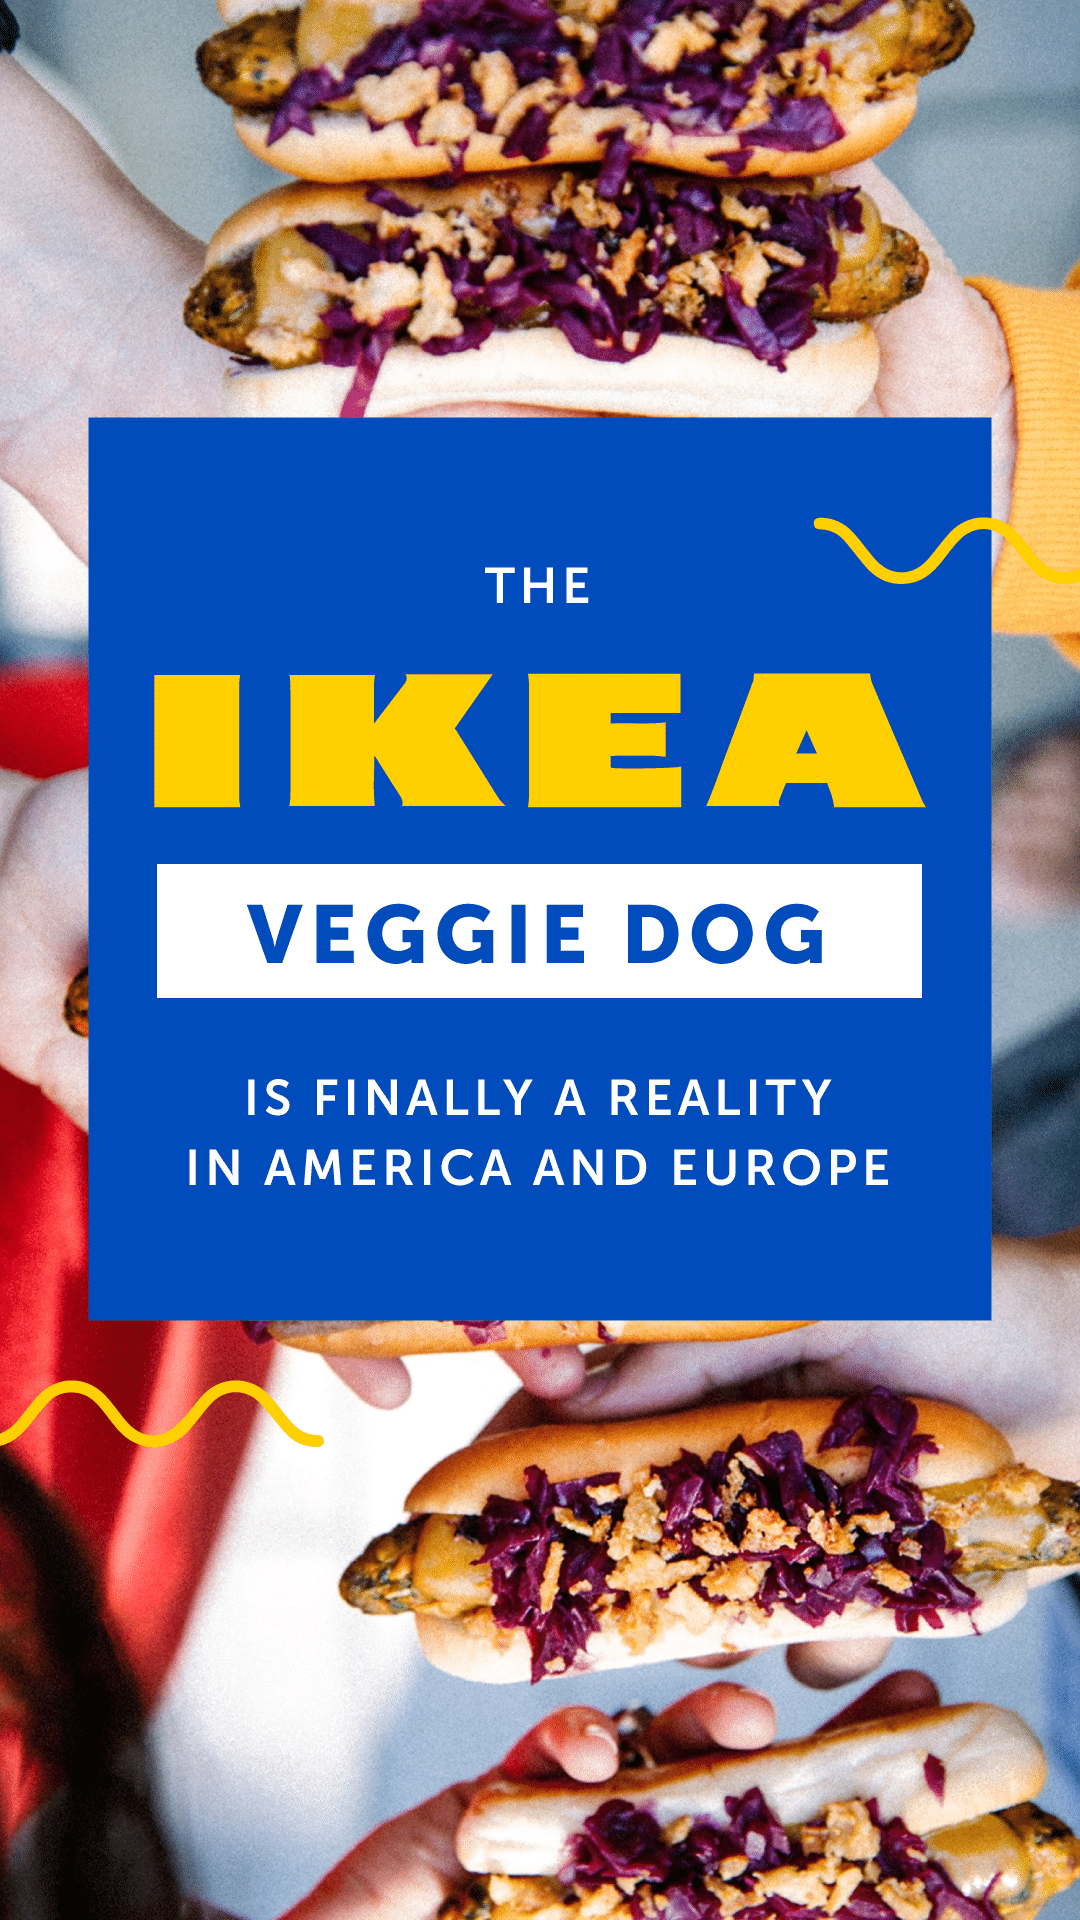 The IKEA Veggie Dog Is Finally a Reality in America and Europe